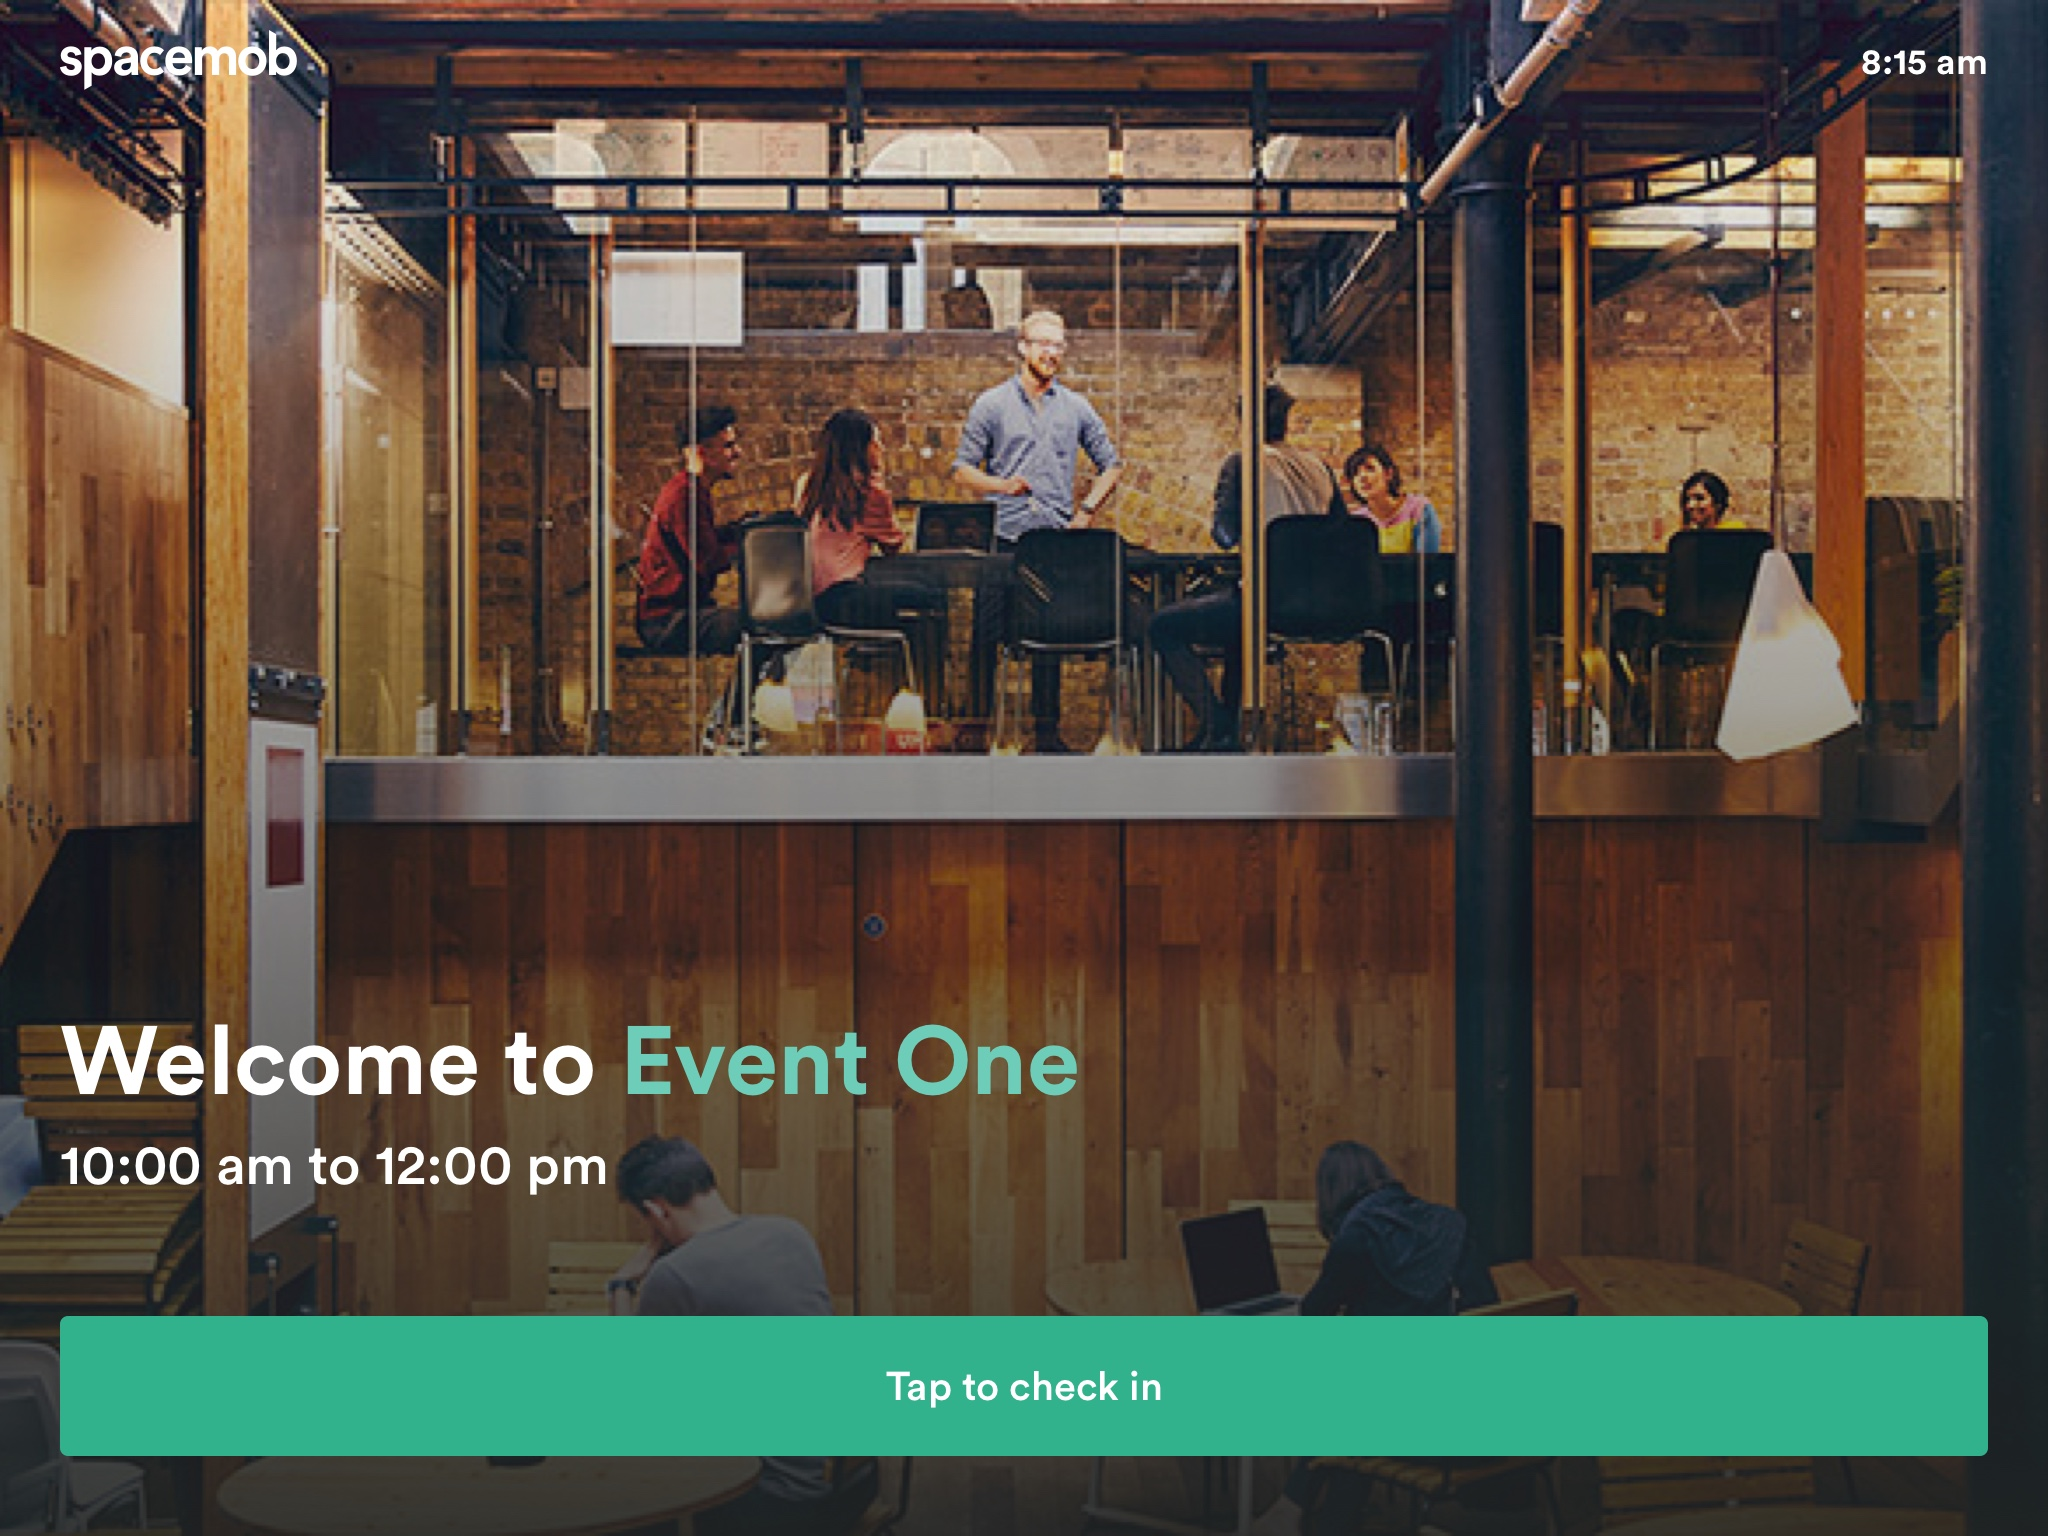 The Event/Meeting App UI